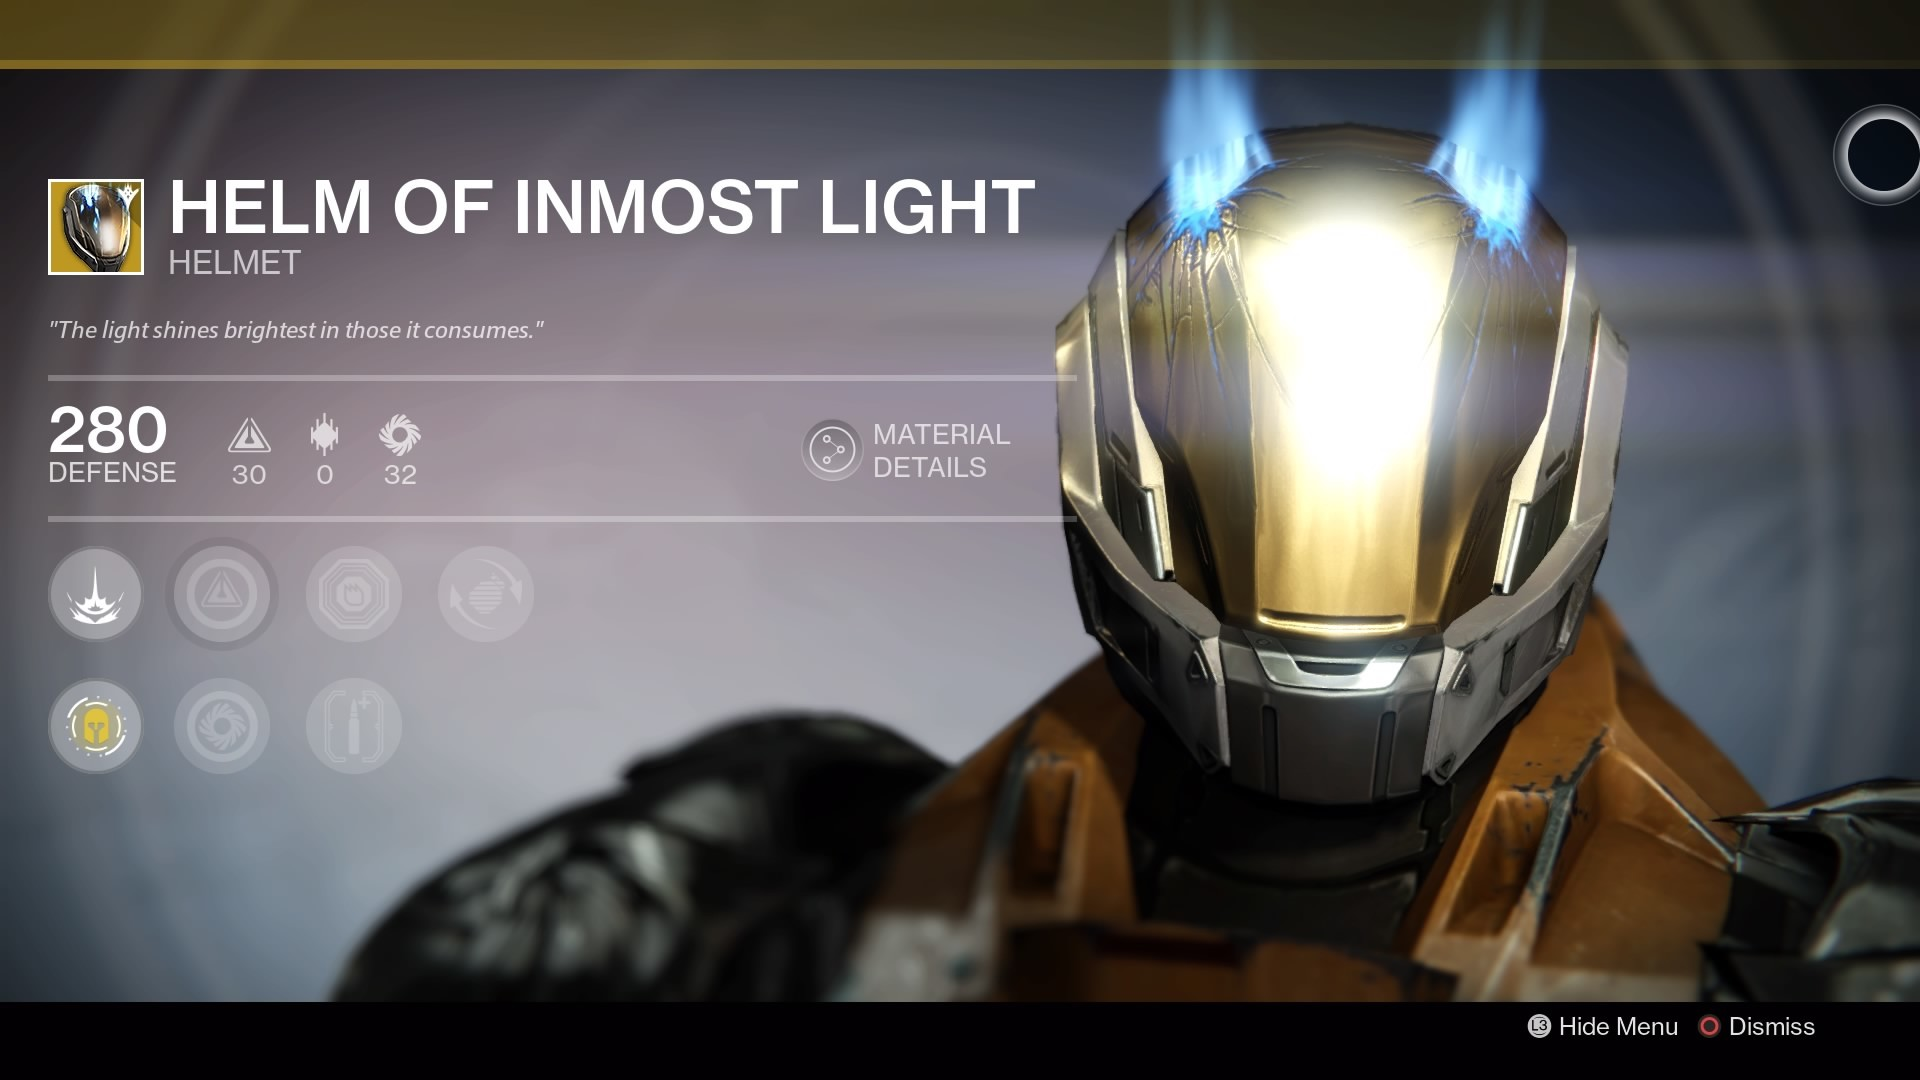 1920x1080 4) Helm of Inmost Light